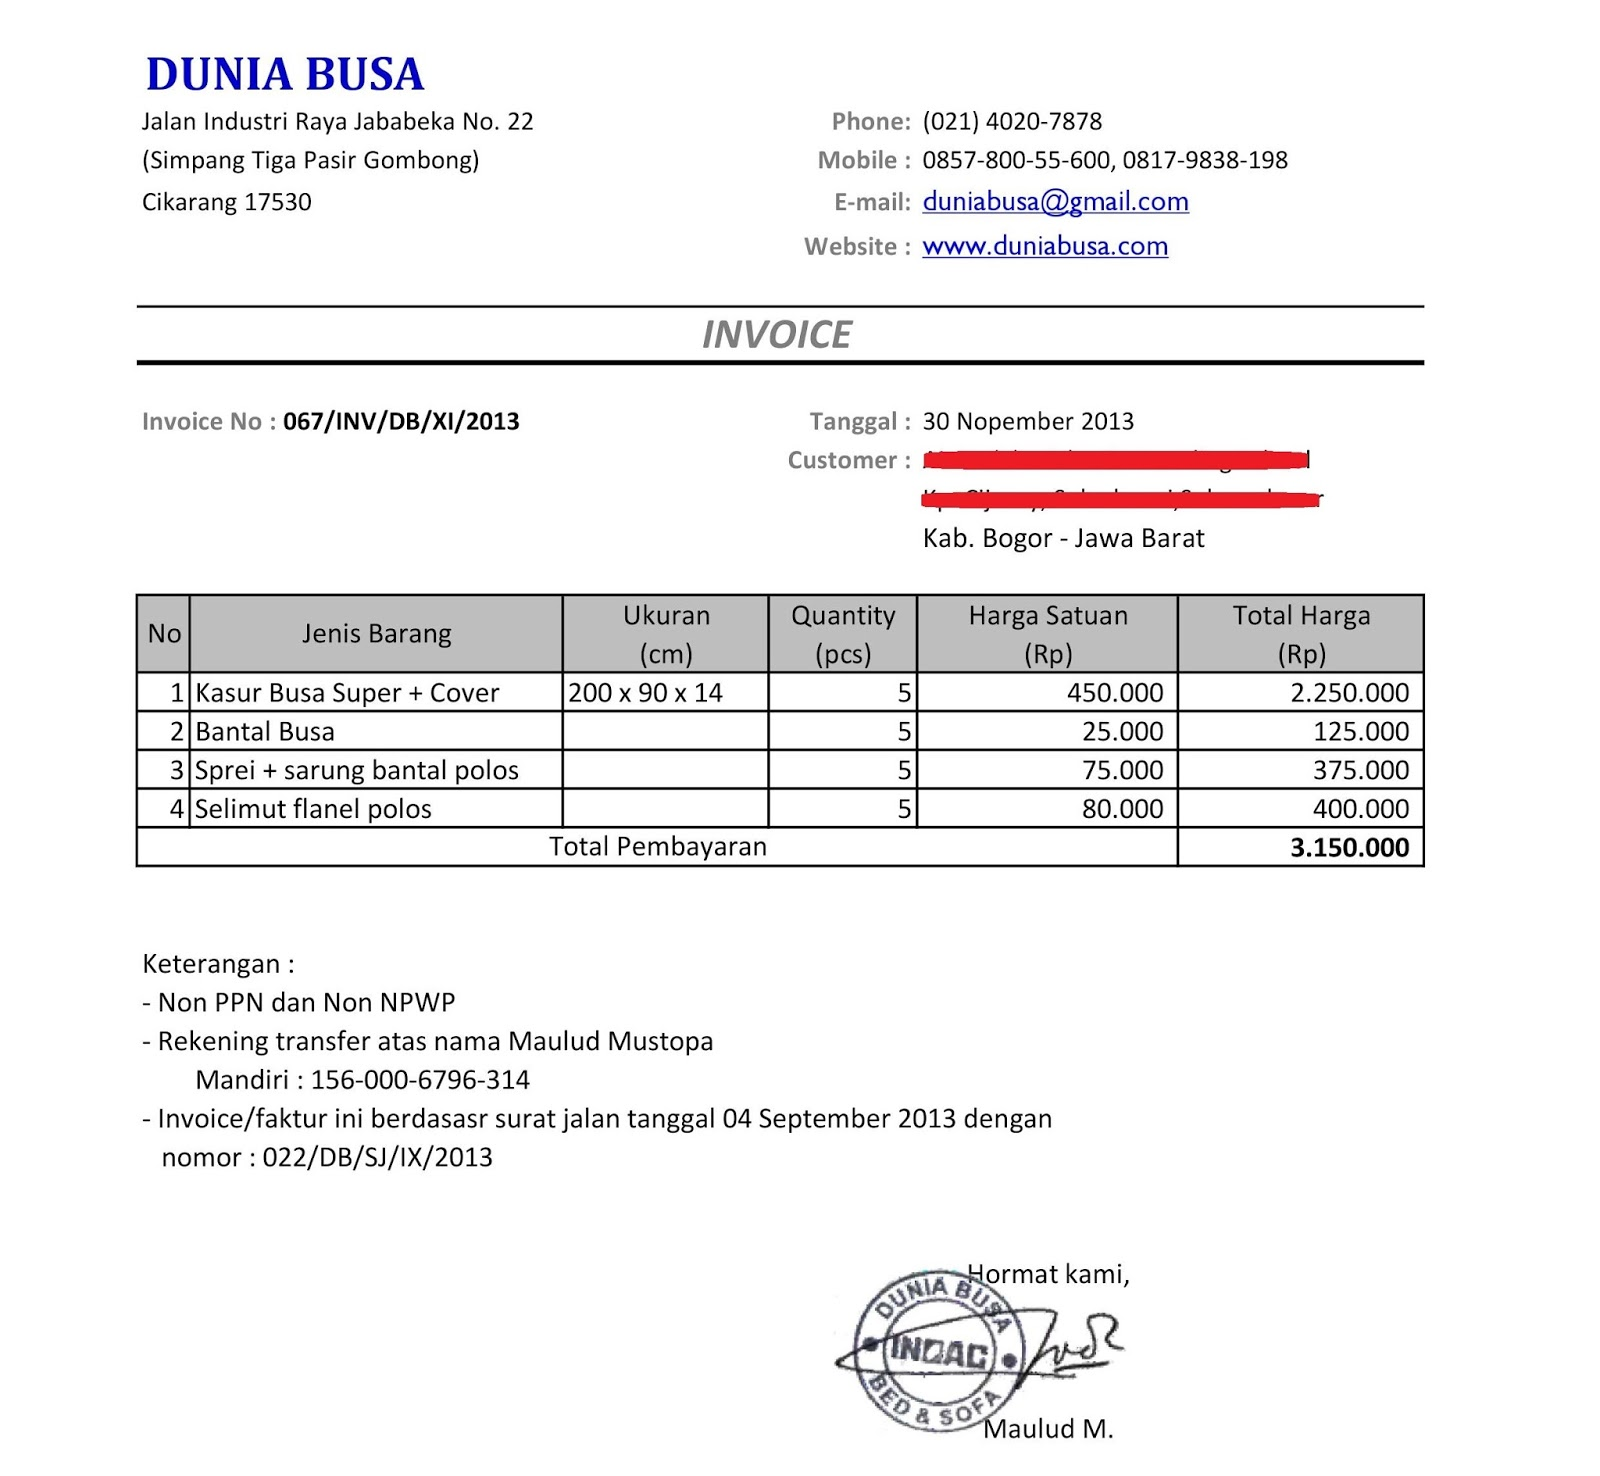 Aldiablosus  Terrific Free Invoice Online  Create Invoice Online  Invoice Template  With Entrancing Contoh Format Invoice Atau Surat Tagihan  Brankas Arsip  Free Invoice Online With Beauteous Revised Invoice Also Contractor Invoice Template In Addition Create An Invoice And Online Invoicing As Well As Free Invoice Template Word Additionally Blank Invoice Template From Sklepco With Aldiablosus  Entrancing Free Invoice Online  Create Invoice Online  Invoice Template  With Beauteous Contoh Format Invoice Atau Surat Tagihan  Brankas Arsip  Free Invoice Online And Terrific Revised Invoice Also Contractor Invoice Template In Addition Create An Invoice From Sklepco